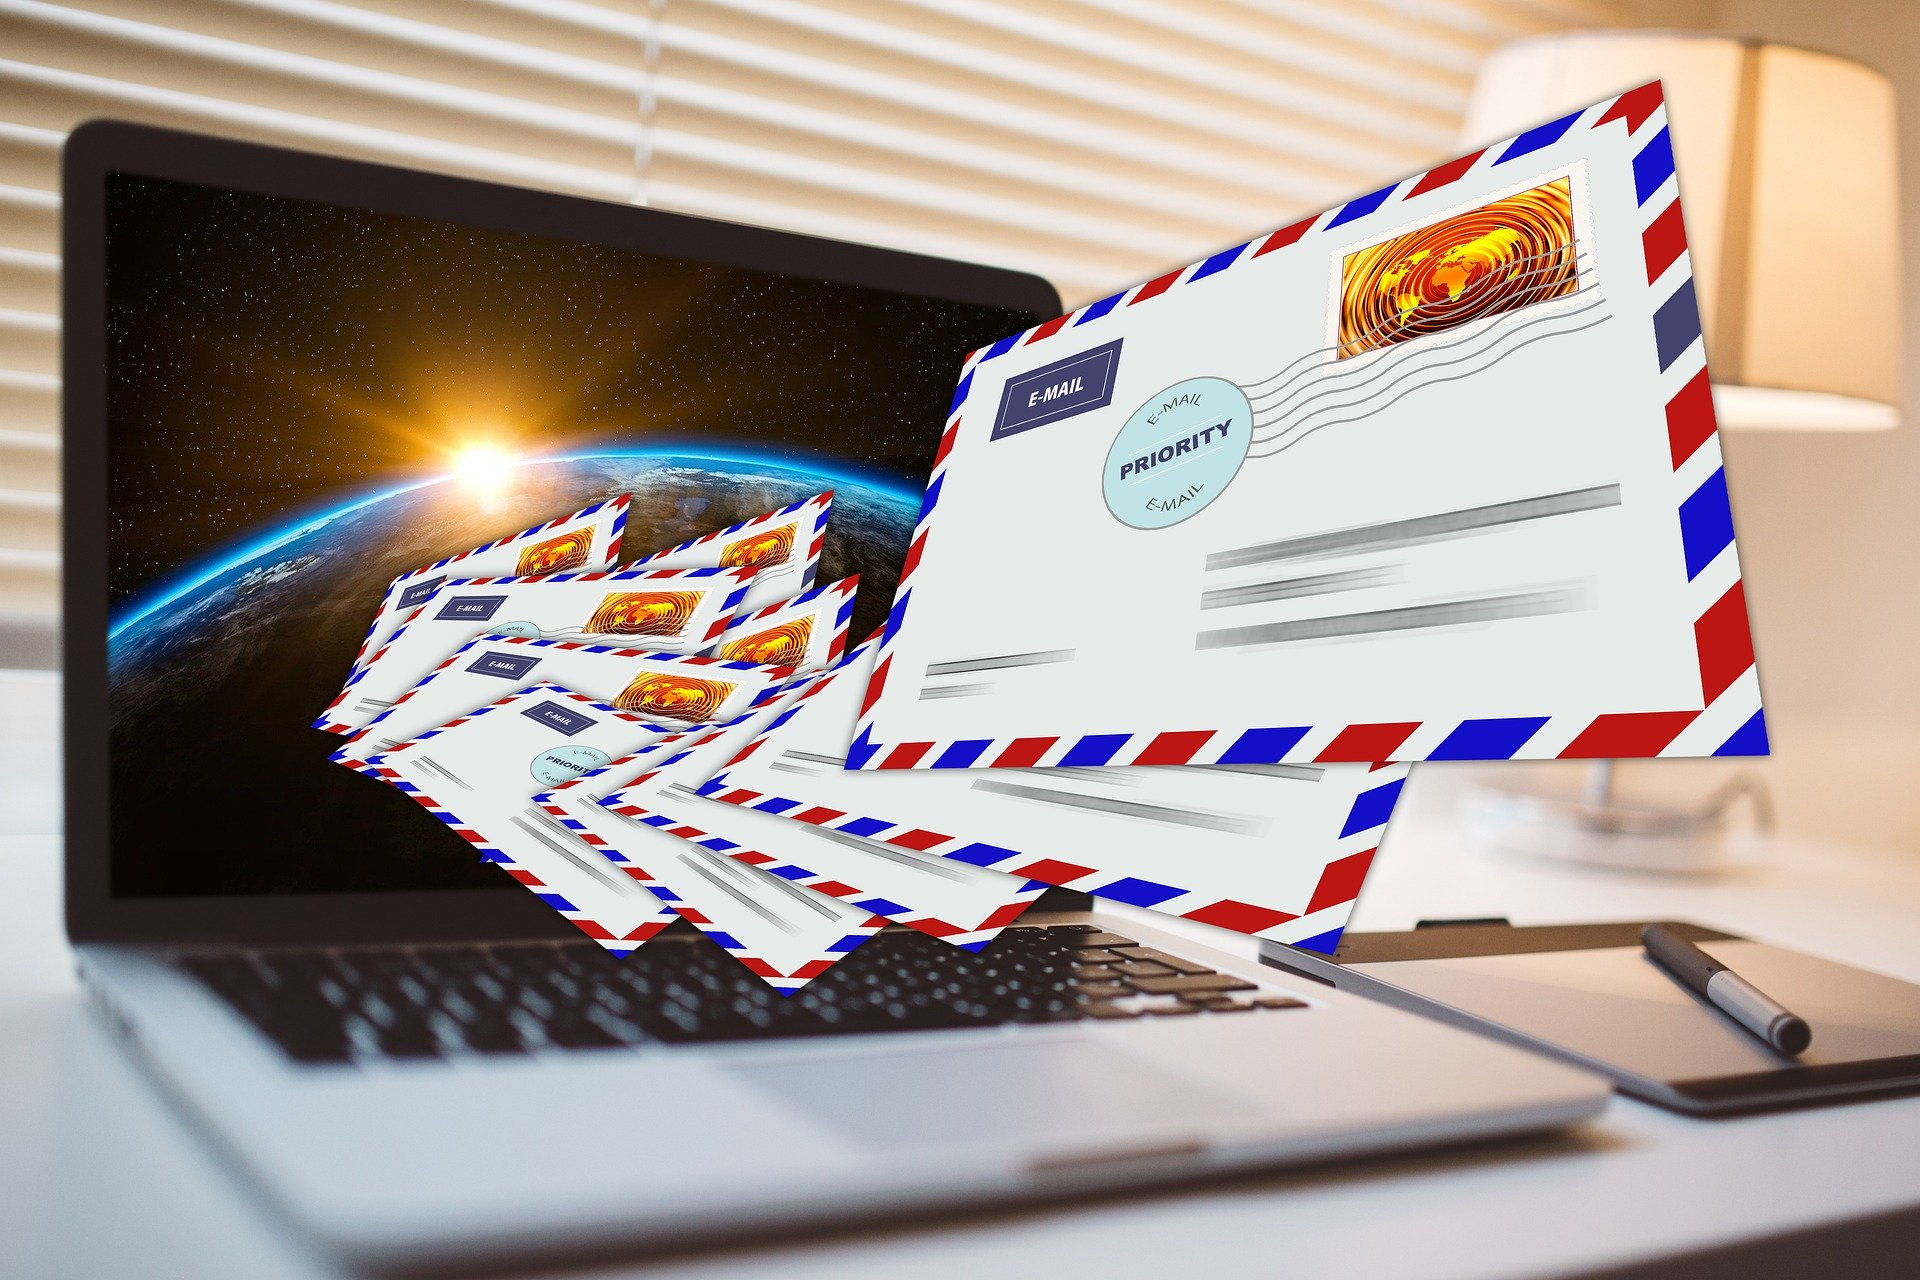 Top 20 Ways to Stop Email Phishing Attacks